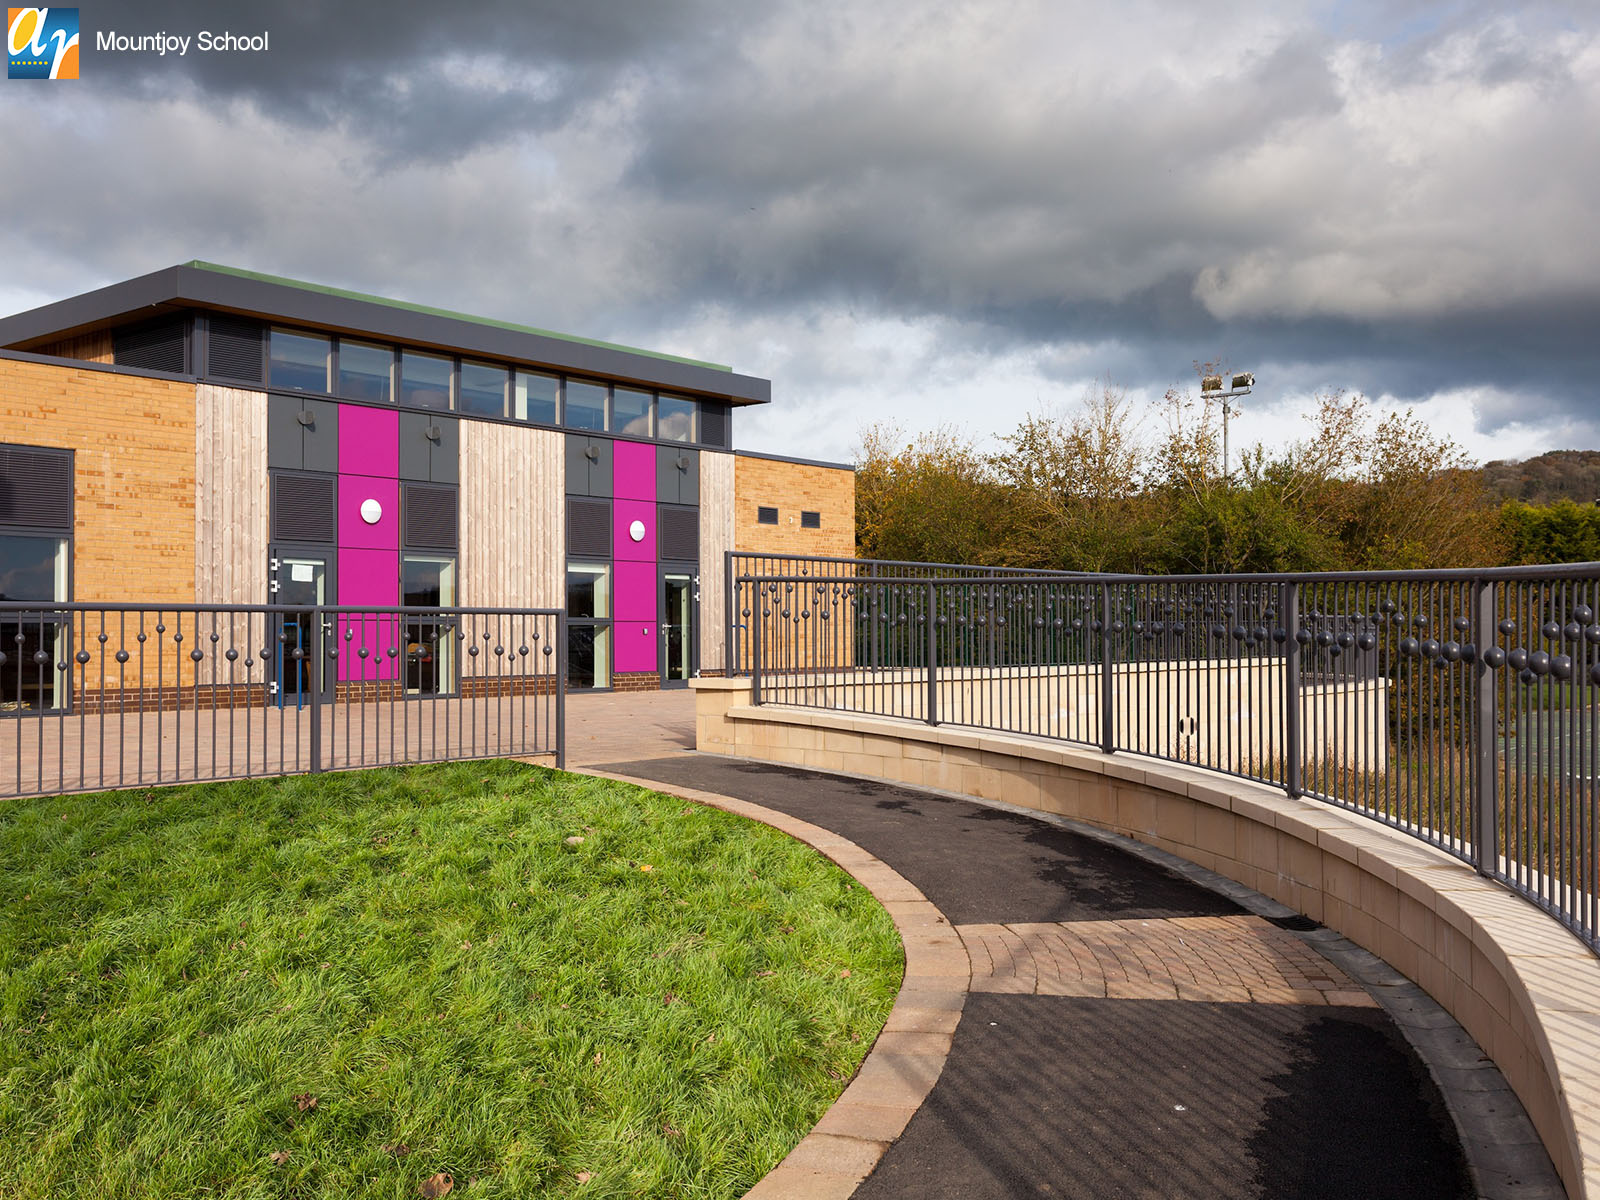 Mountjoy school bespoke metalwork